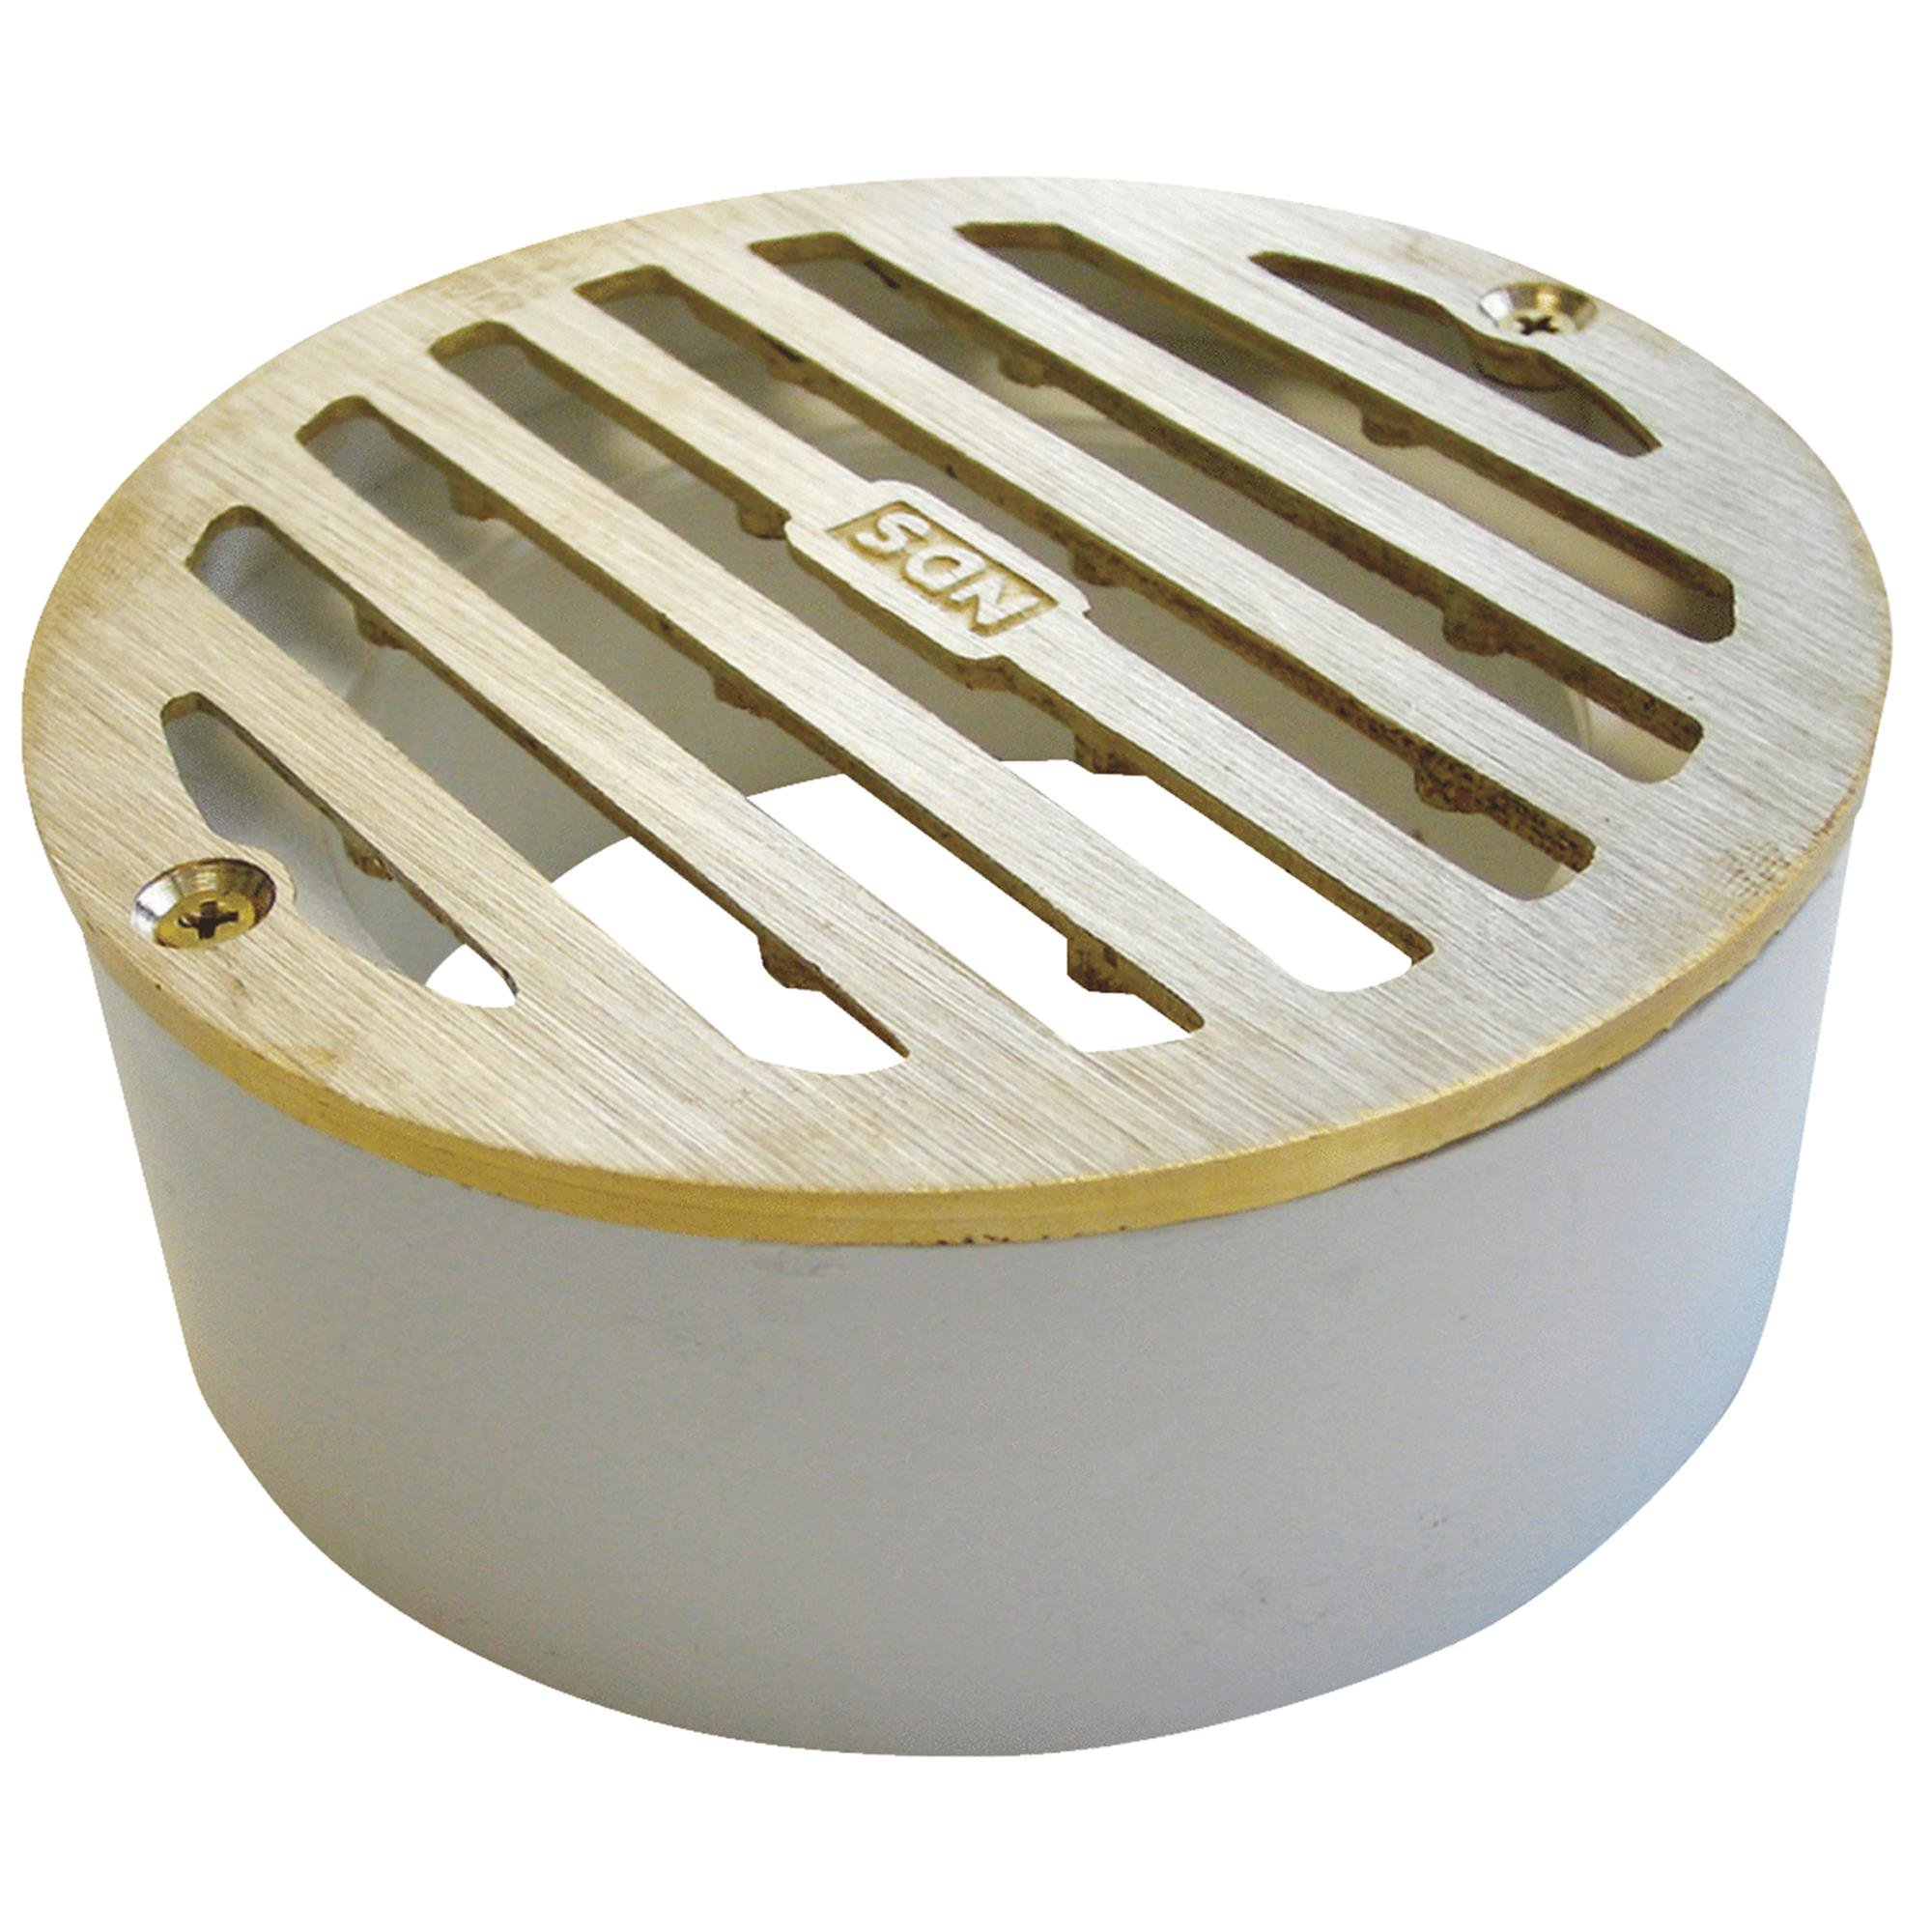 NDS 4 In. Round Satin Brass Grate